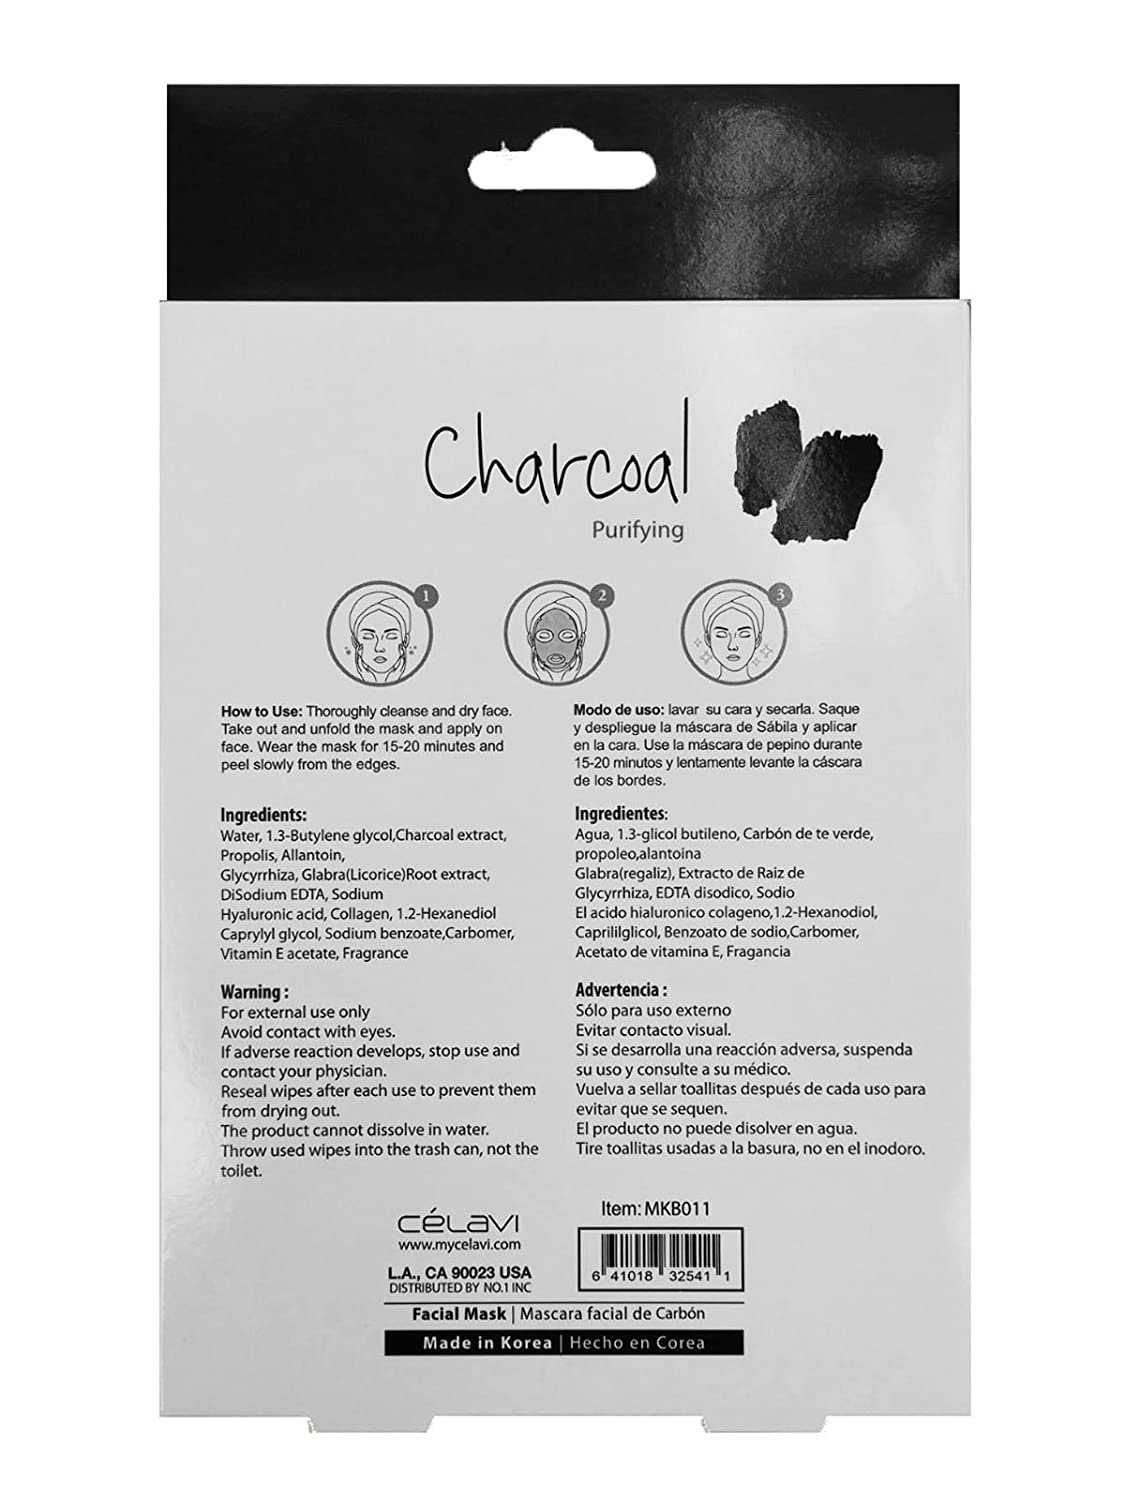 Amazon.com : Celavi Essence Facial Mask Paper Sheet Korea Skin Care Moisturizing 5 Pack Box (Charcoal : Beauty